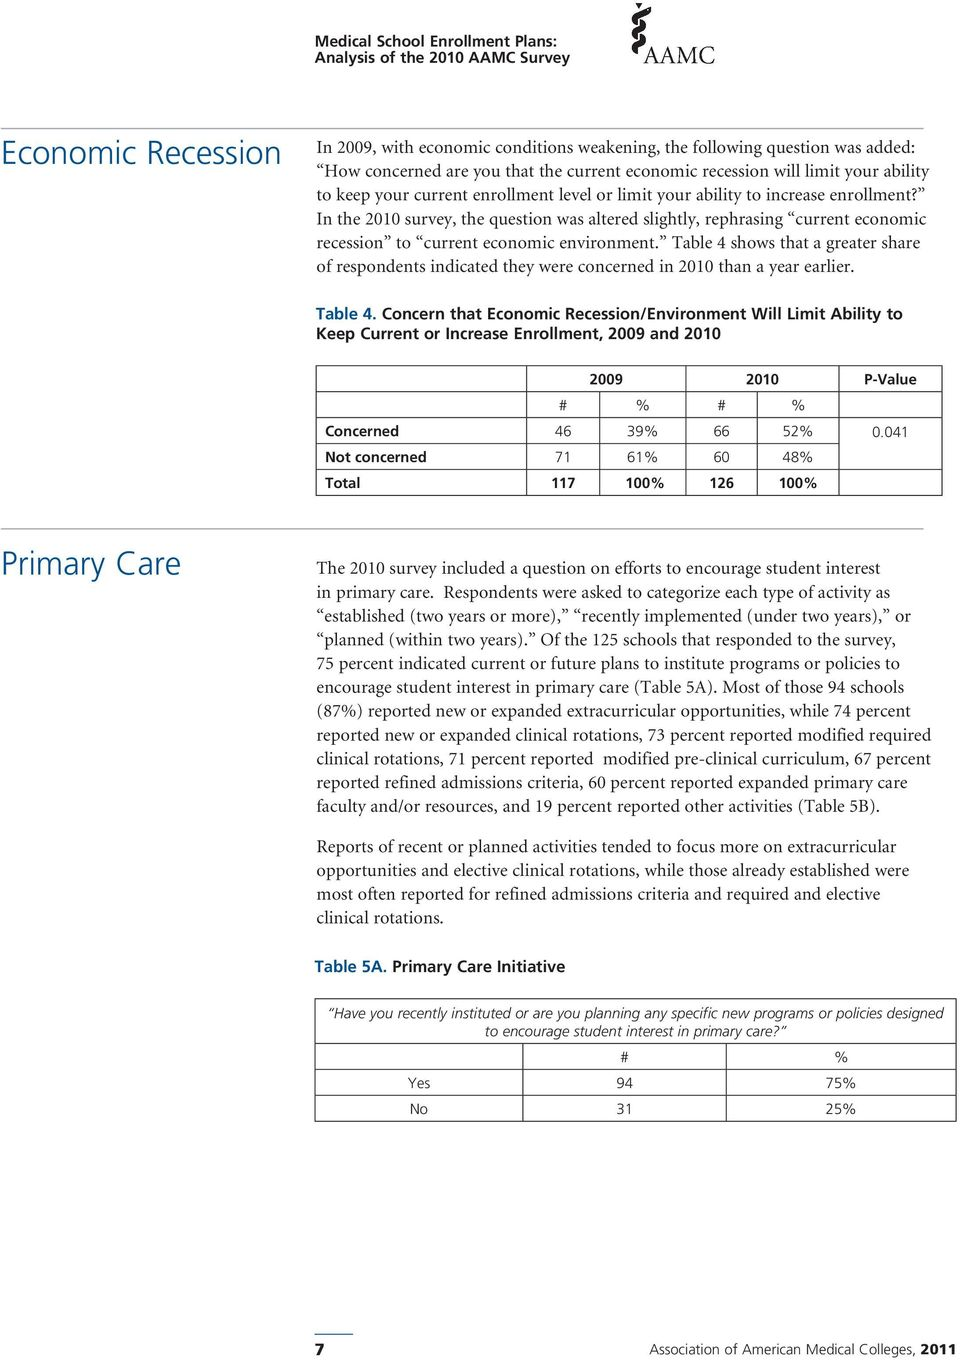 Table 4 shows that a greater share of respondents indicated they were concerned in 2010 than a year earlier. Table 4.